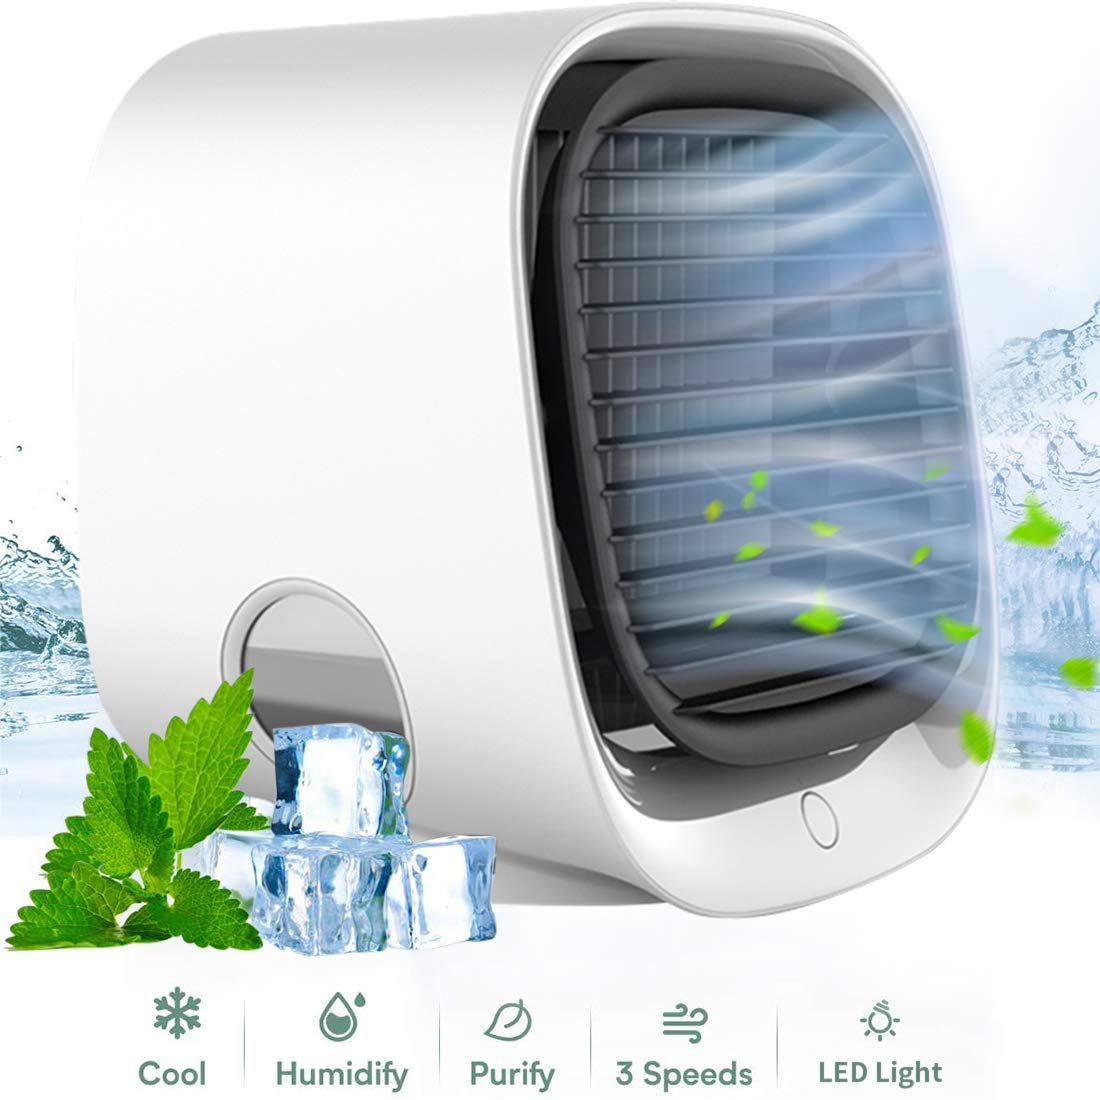 Details about Personal Space Portable Mini Air Conditioner Cooling Air Fan Humidifier Purifier